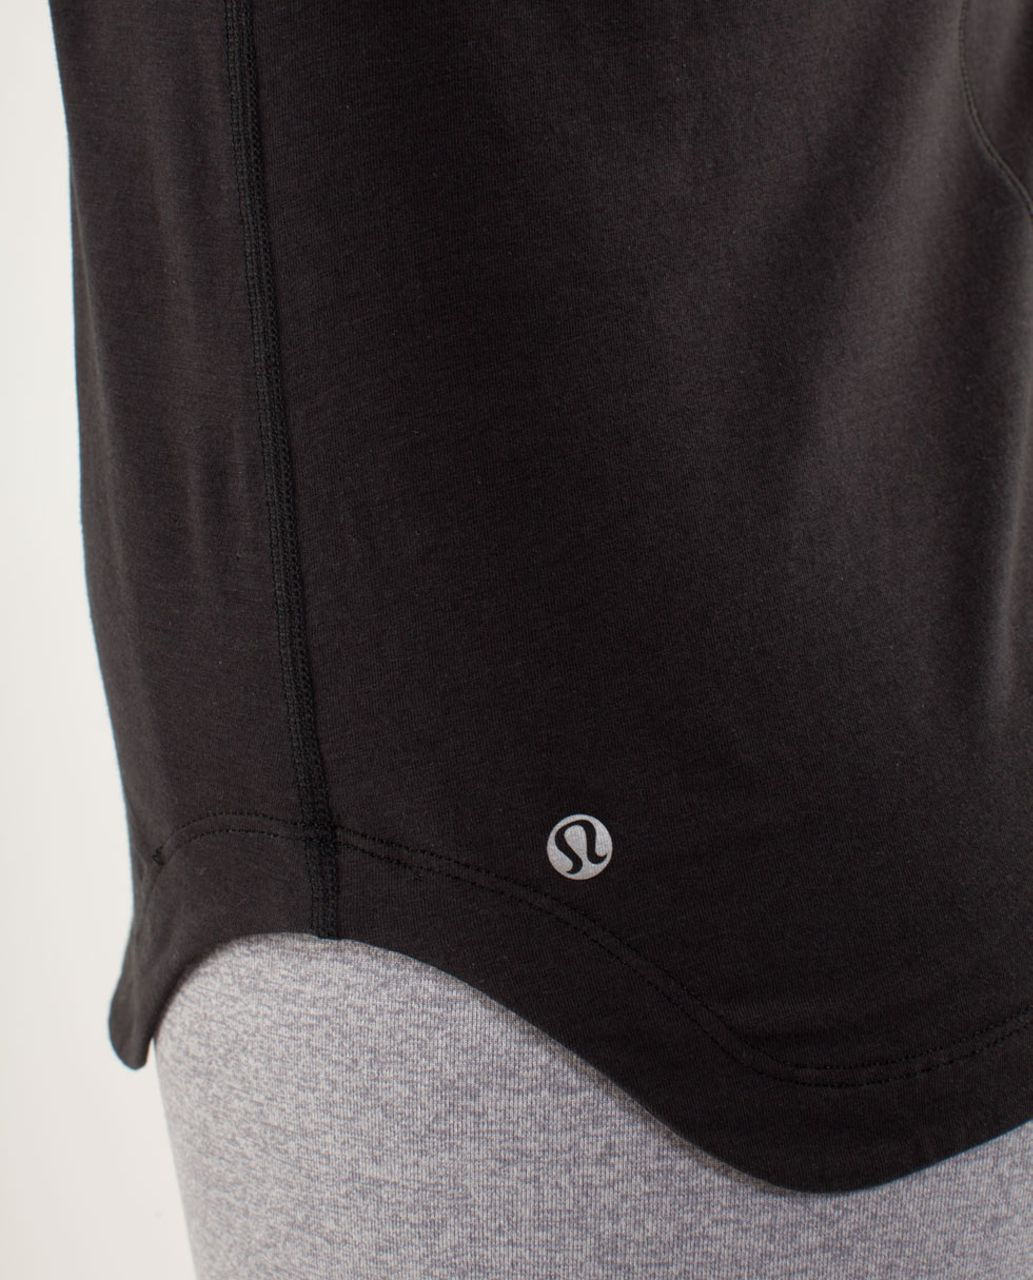 Lululemon Clari-Tee Short Sleeve - Black